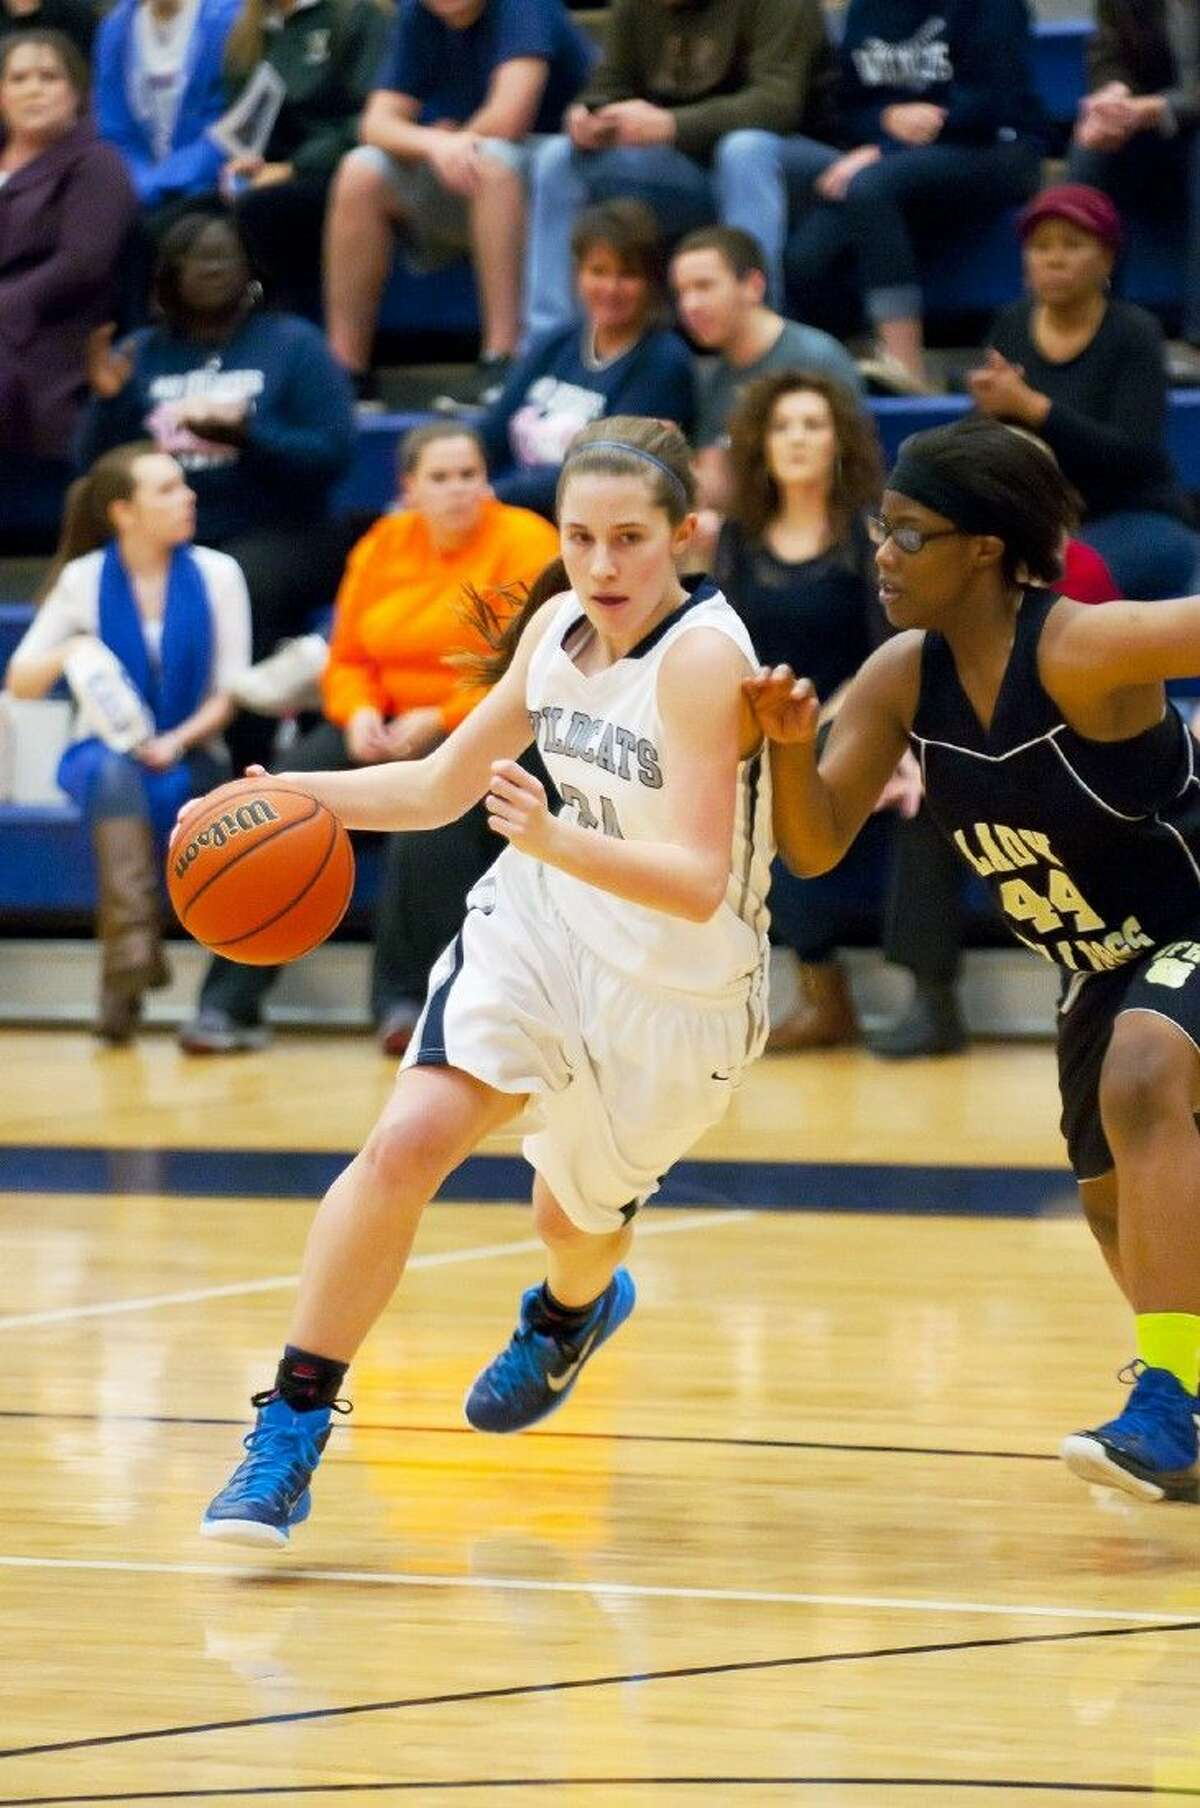 Emily Chaffin (No.24) helped Tomball Memorial drive past North Forest in the bi-district round. Tomball Memorial was one of four district 19-5A squads to win in the bi-district round